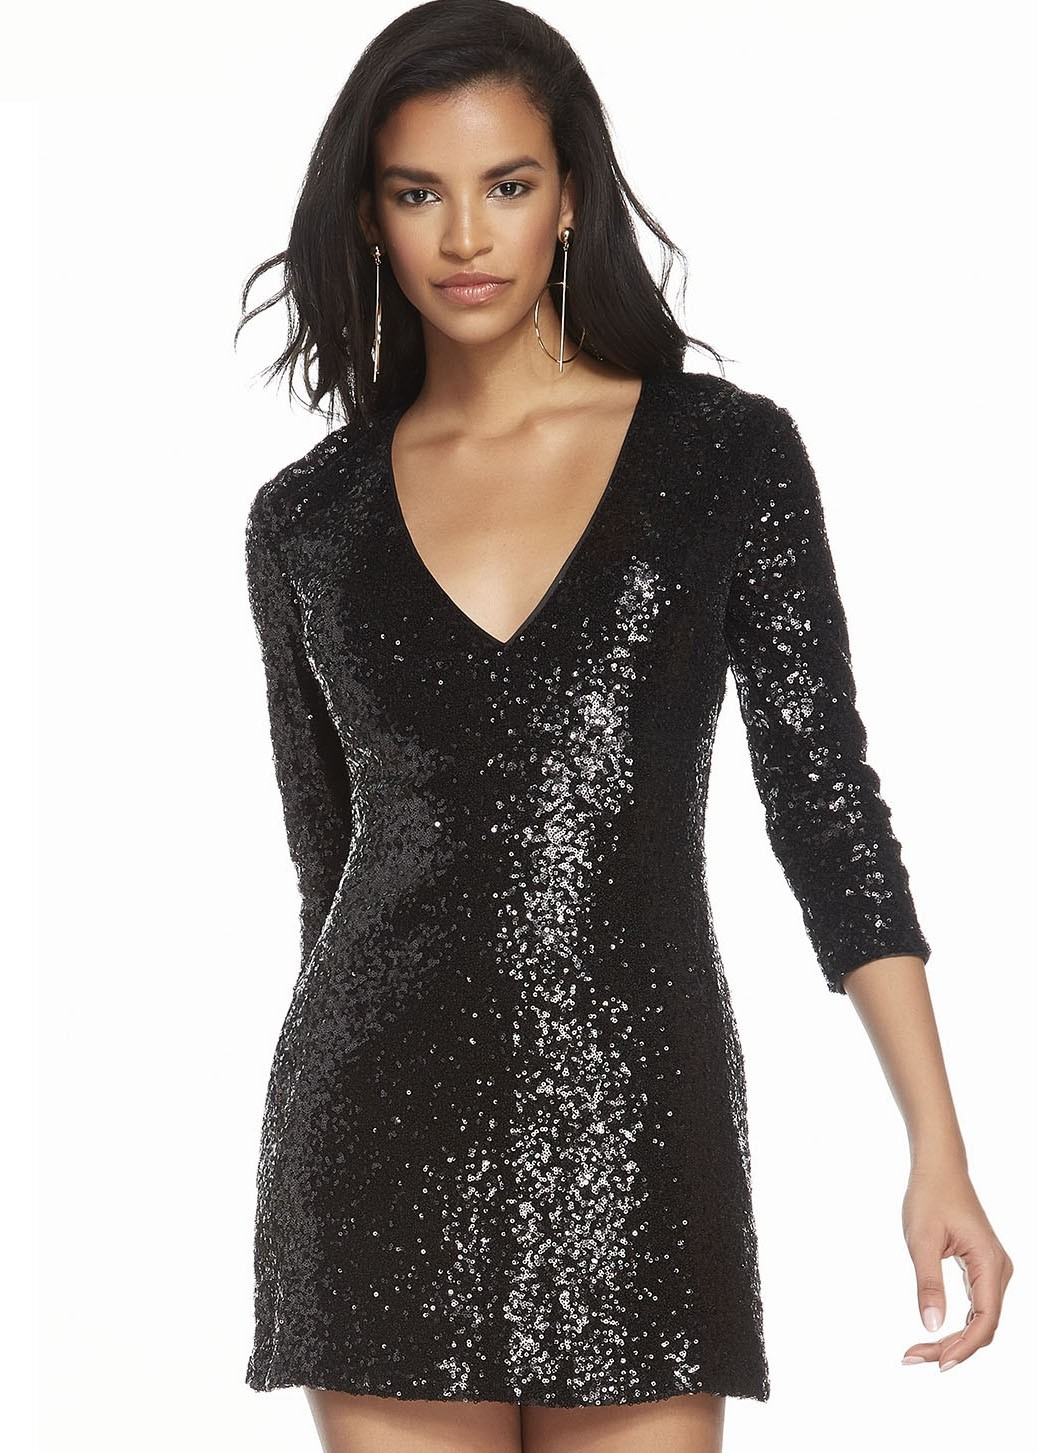 Alyce 4210 Short Sequin Dress with Sleeves